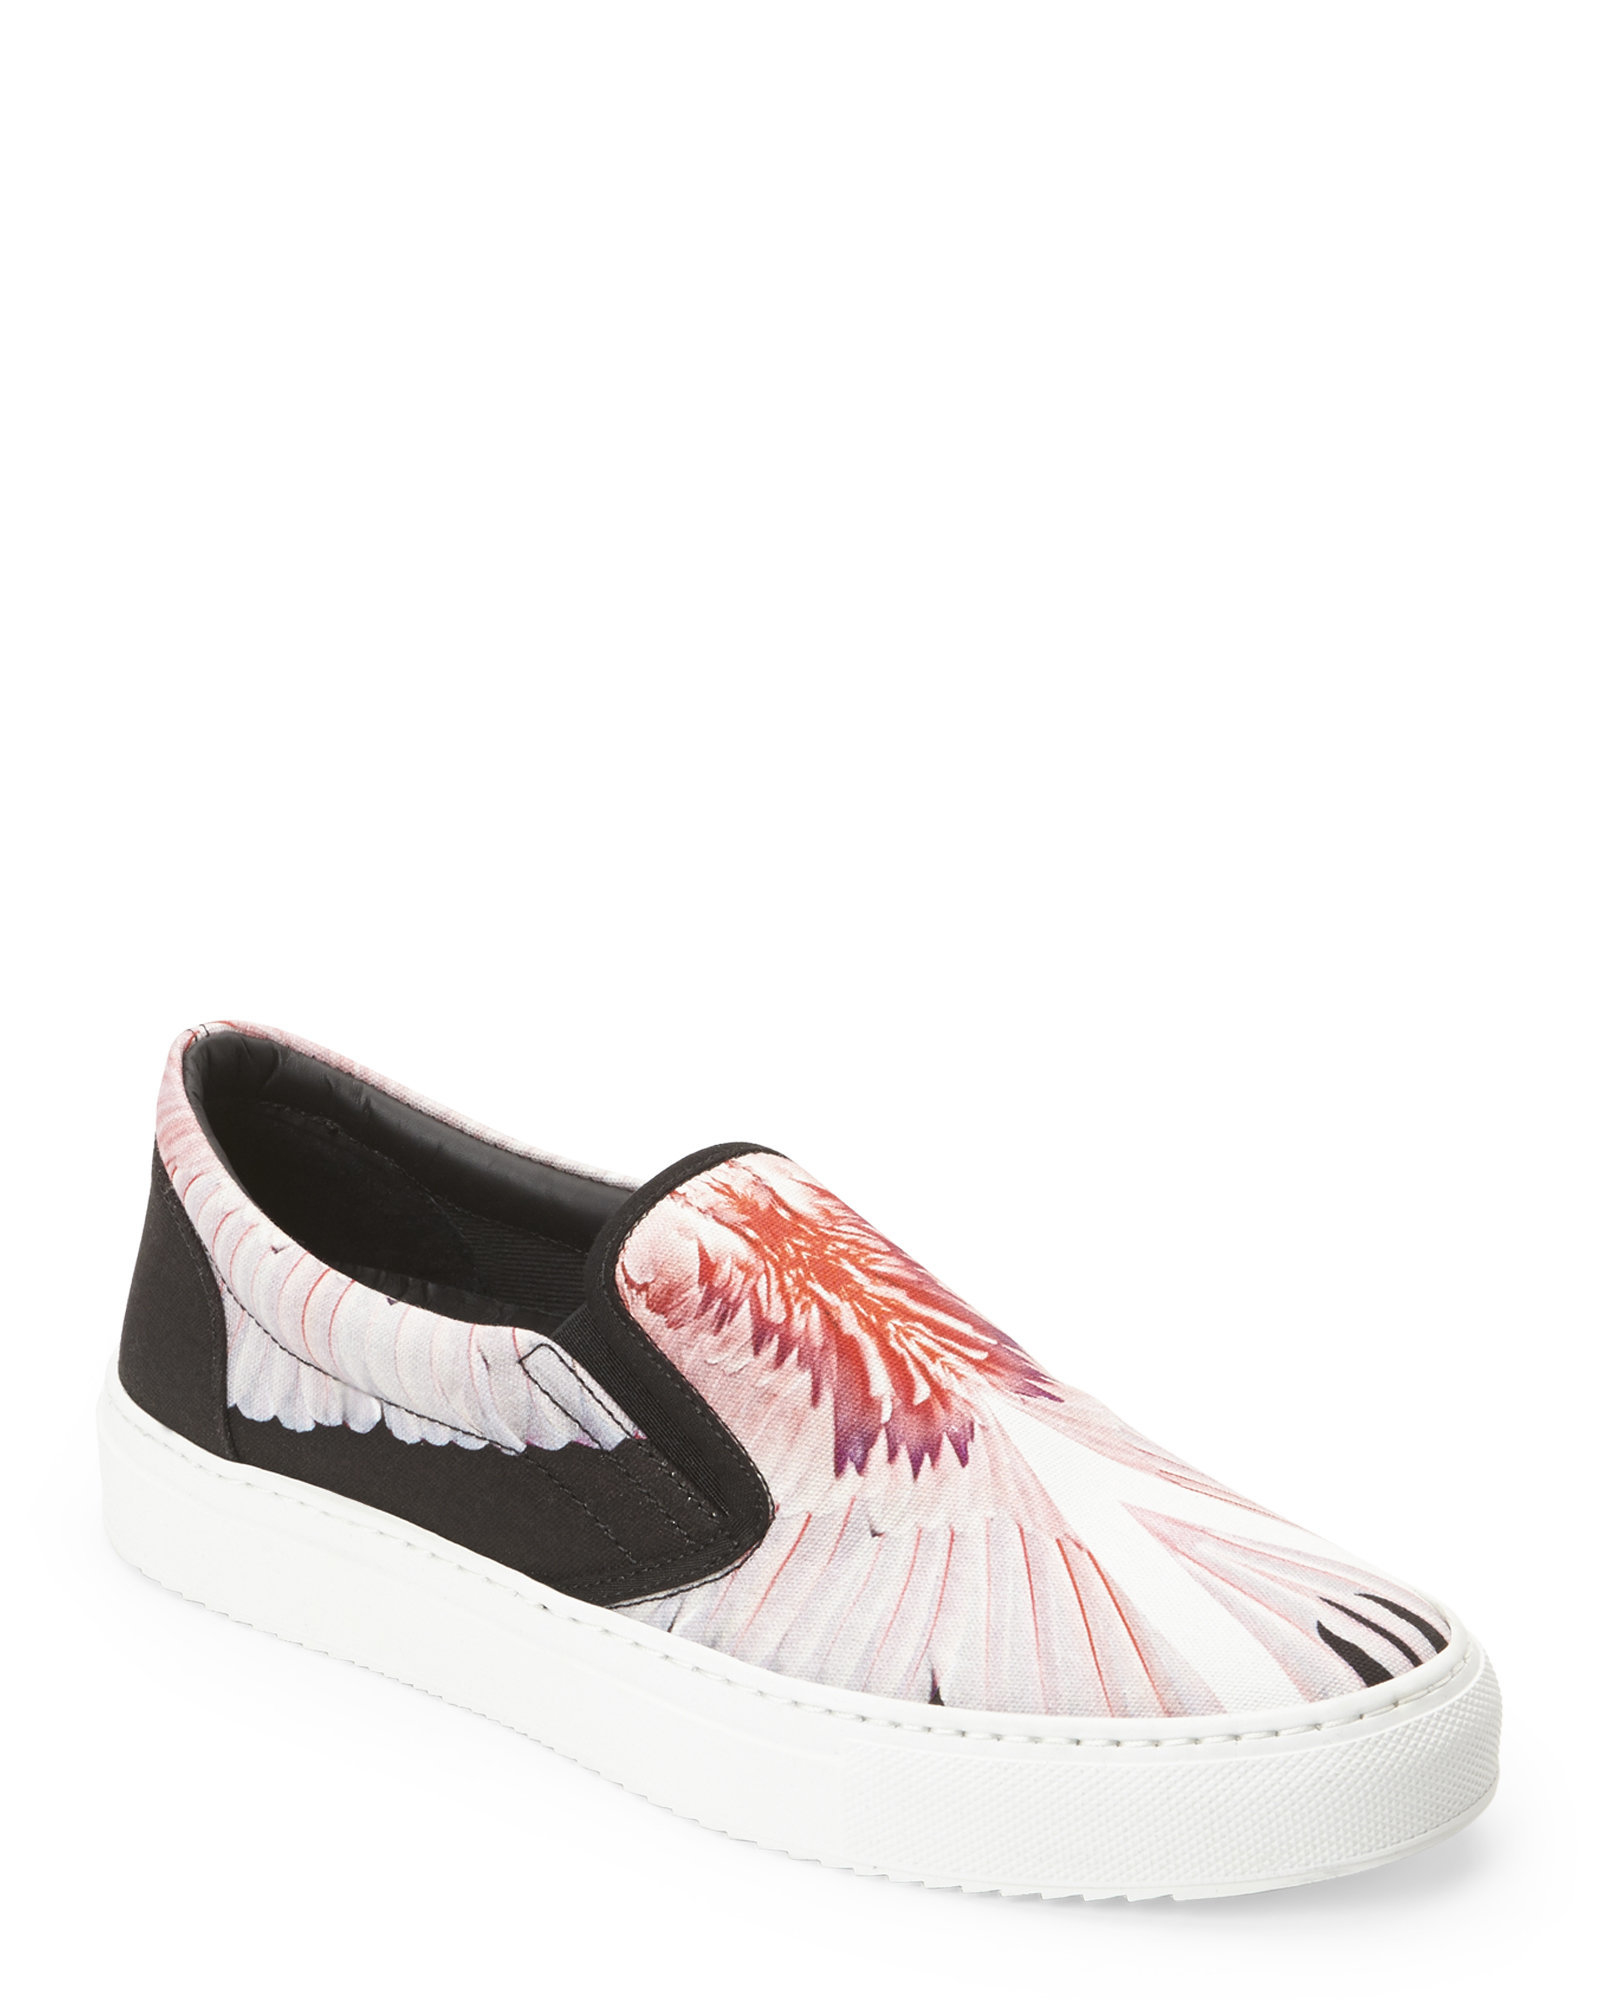 feather print slip-on sneakers - Black Marcelo Burlon Free Shipping Affordable Wiki Sale Online Brand New Unisex Cheap Online Purchase Cheap Online I8xF91tJG